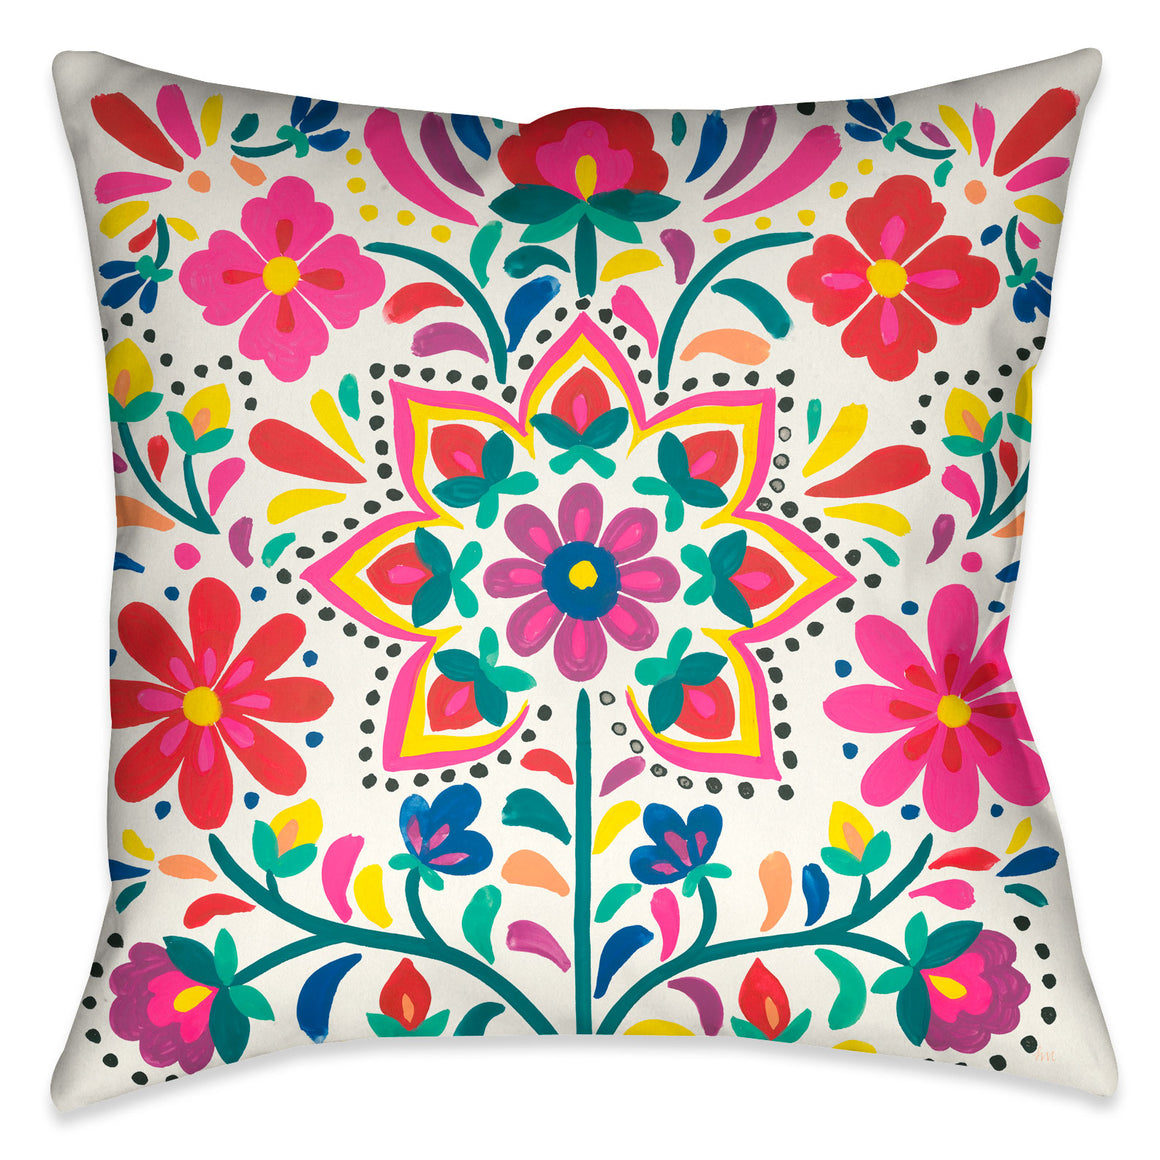 Folk Art Floral V Indoor Decorative Pillow